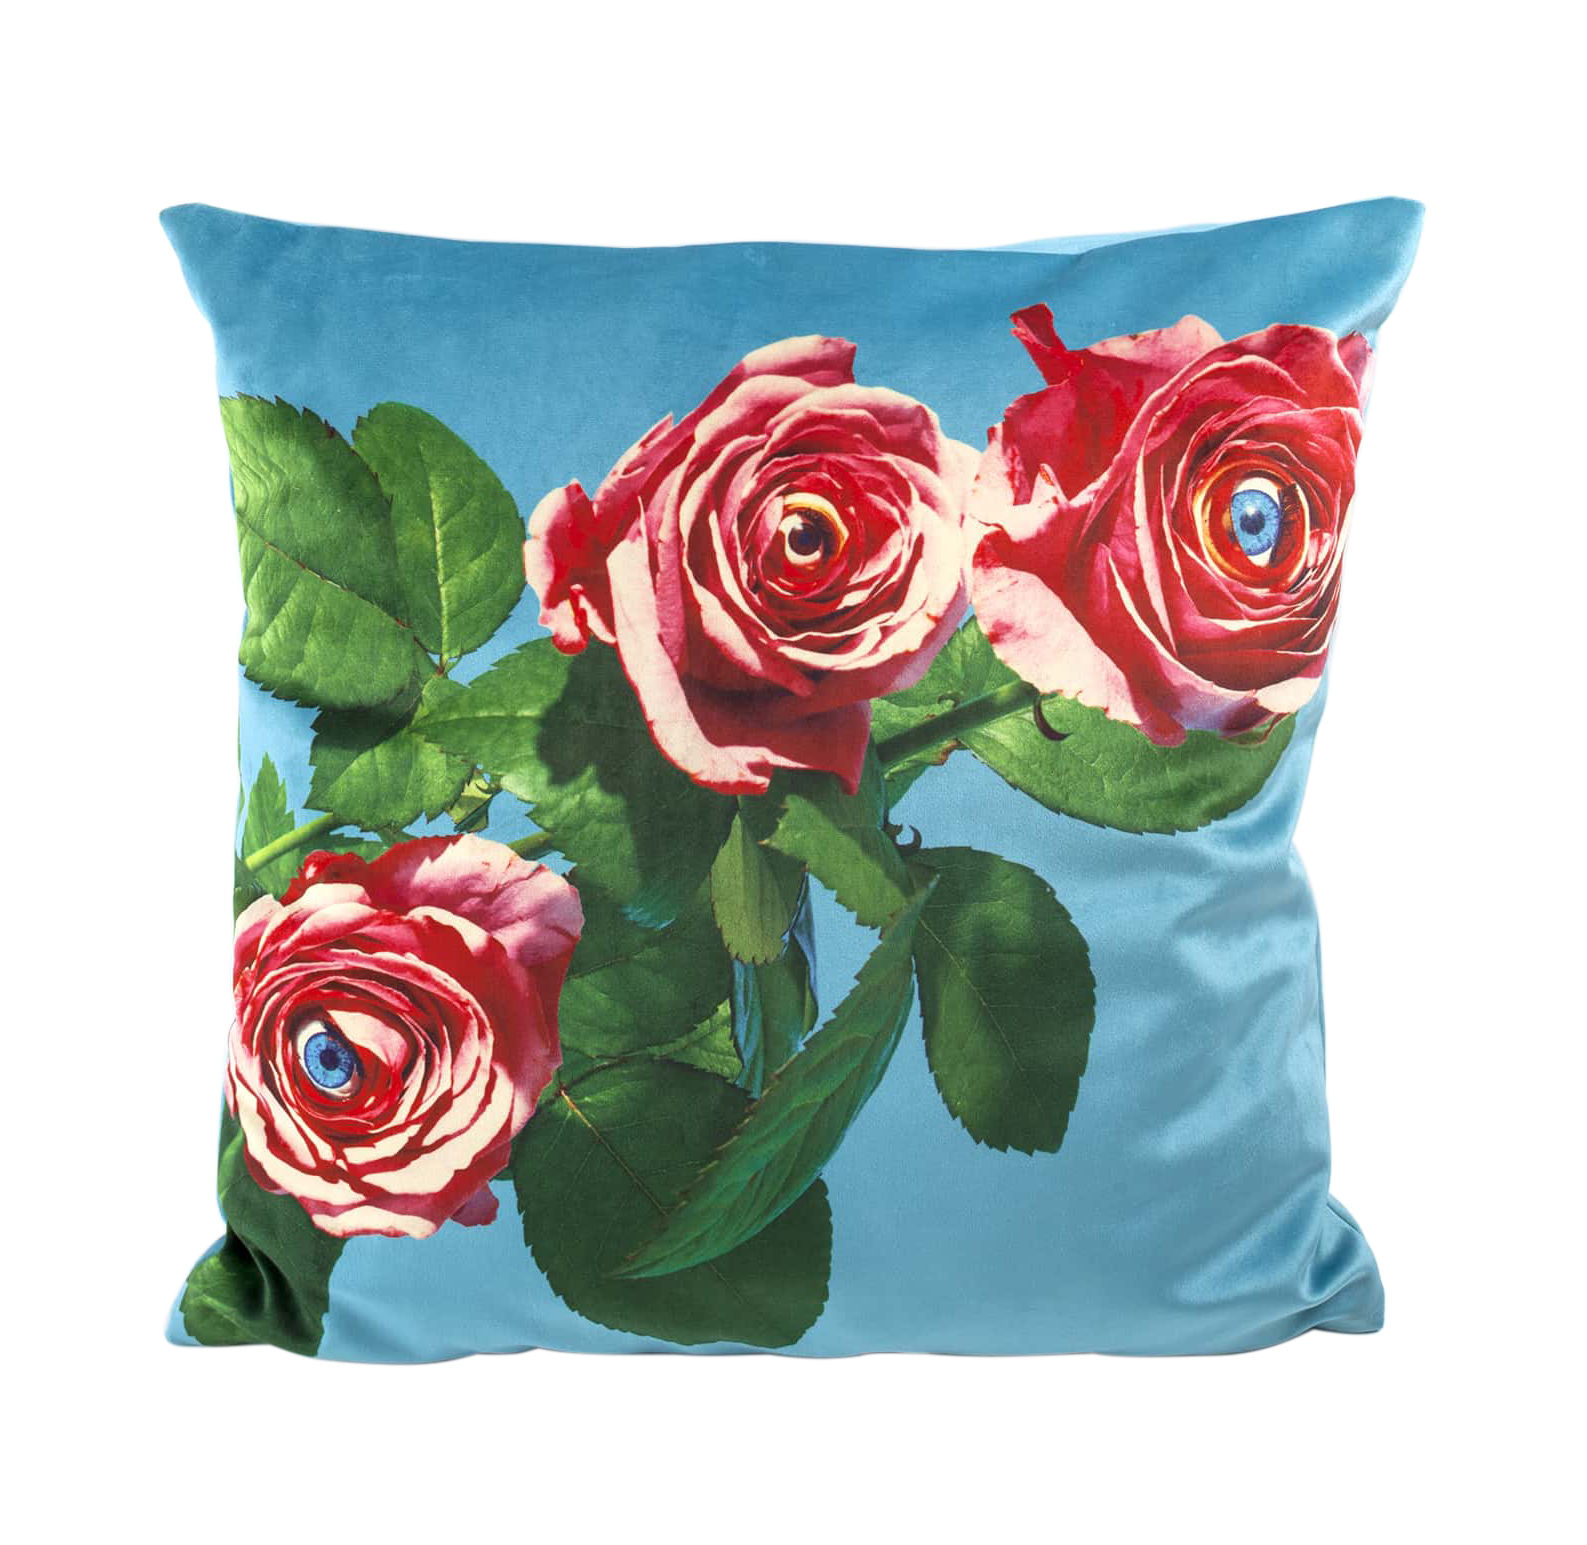 Decoration - Cushions & Poufs - Toiletpaper Cushion - / Pink - 50 x 50 cm by Seletti - Pink / Turquoise - Feathers, Polyester fabric